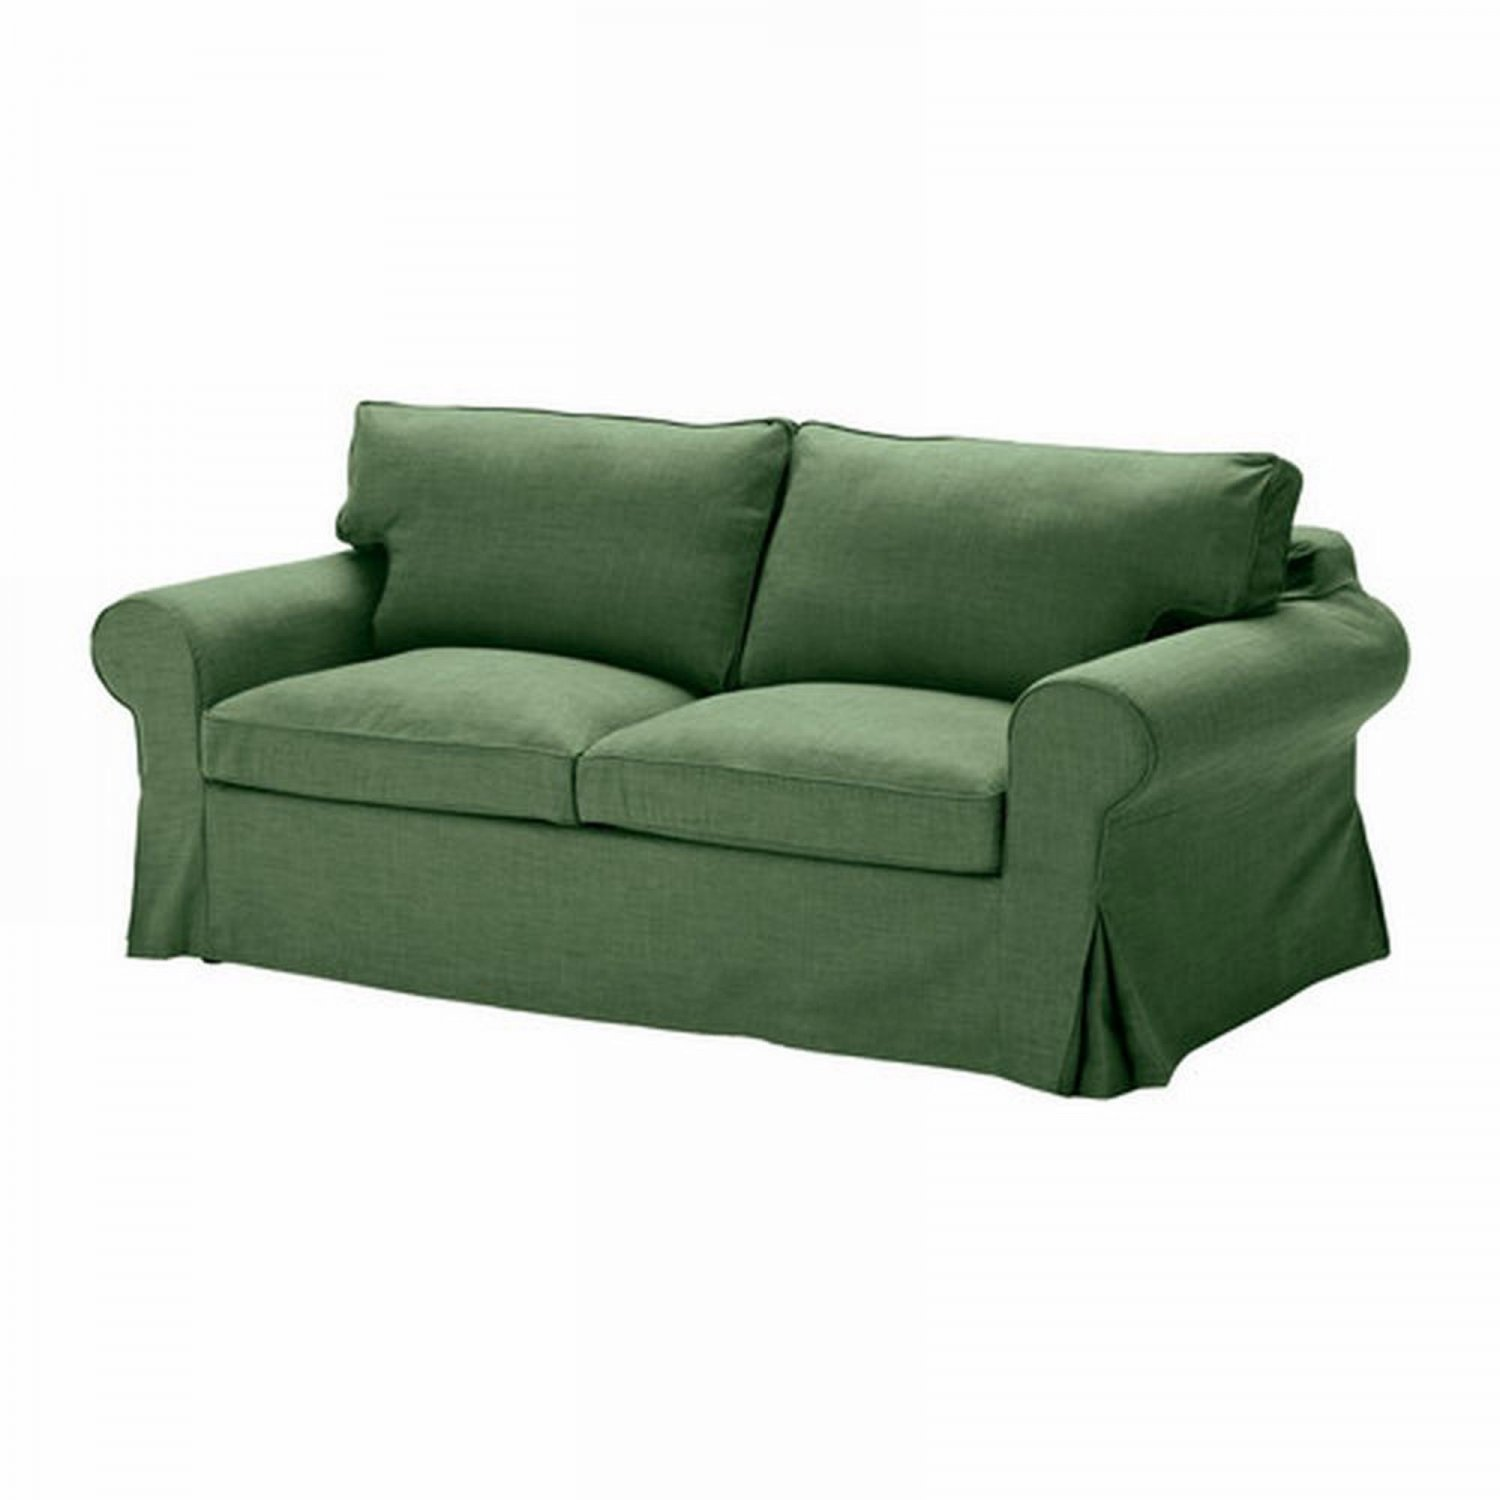 ikea ektorp sofa bed slipcover sofabed cover svanby green. Black Bedroom Furniture Sets. Home Design Ideas